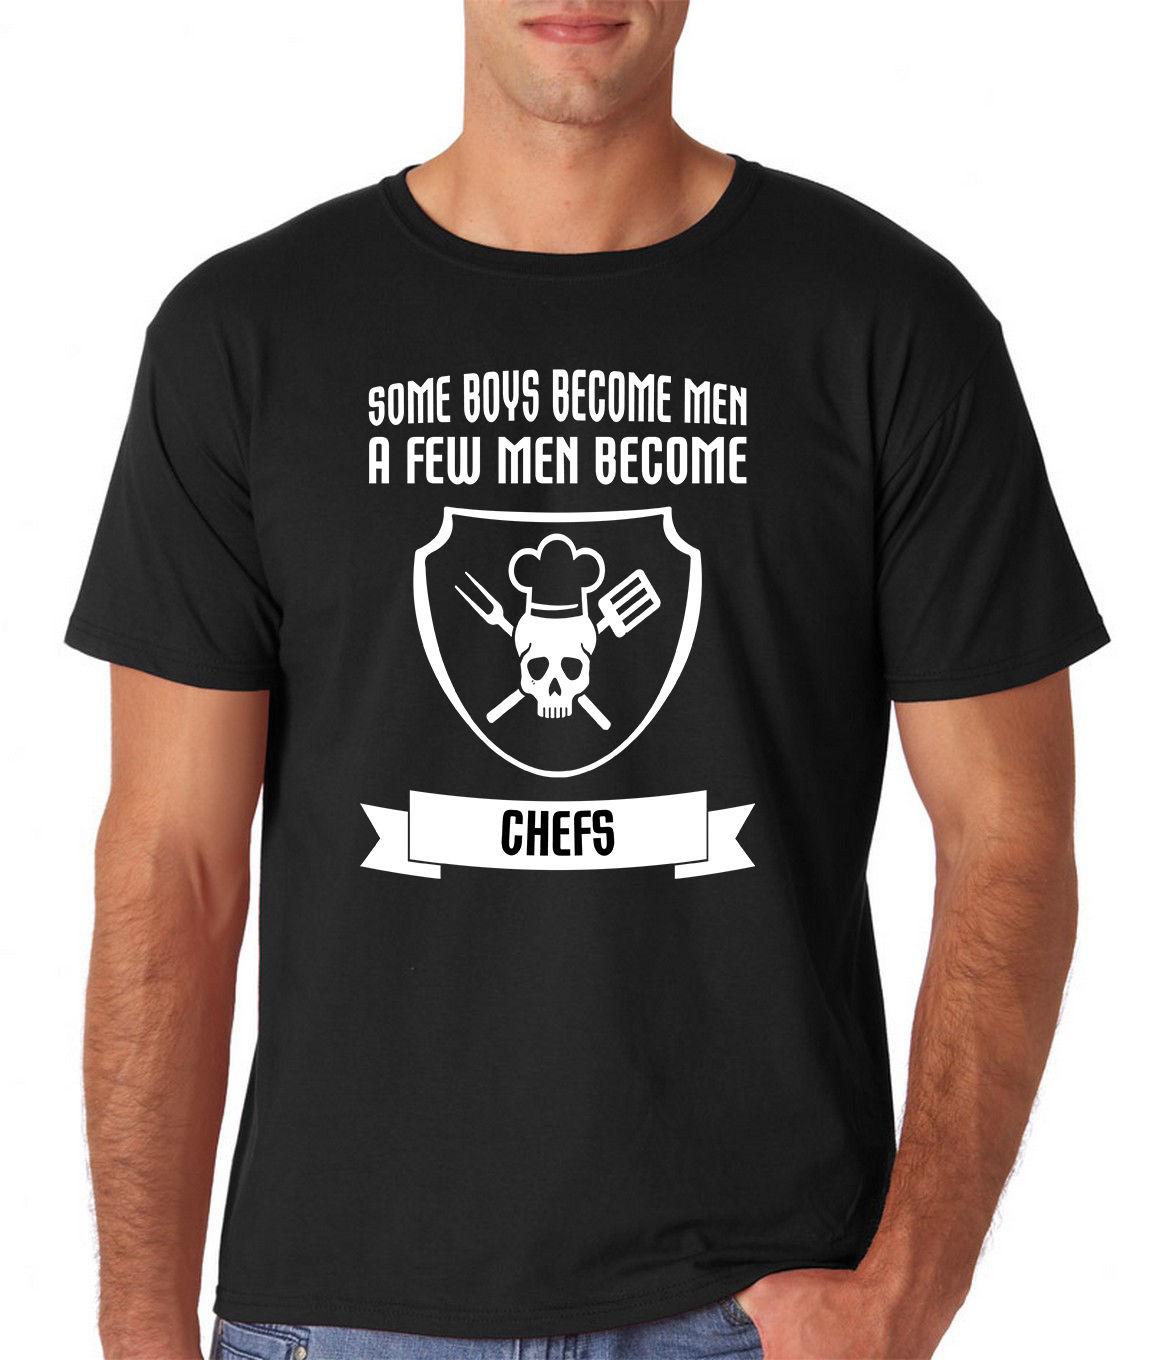 Compare Prices on Funny Chef Tshirt- Online Shopping/Buy Low Price ...